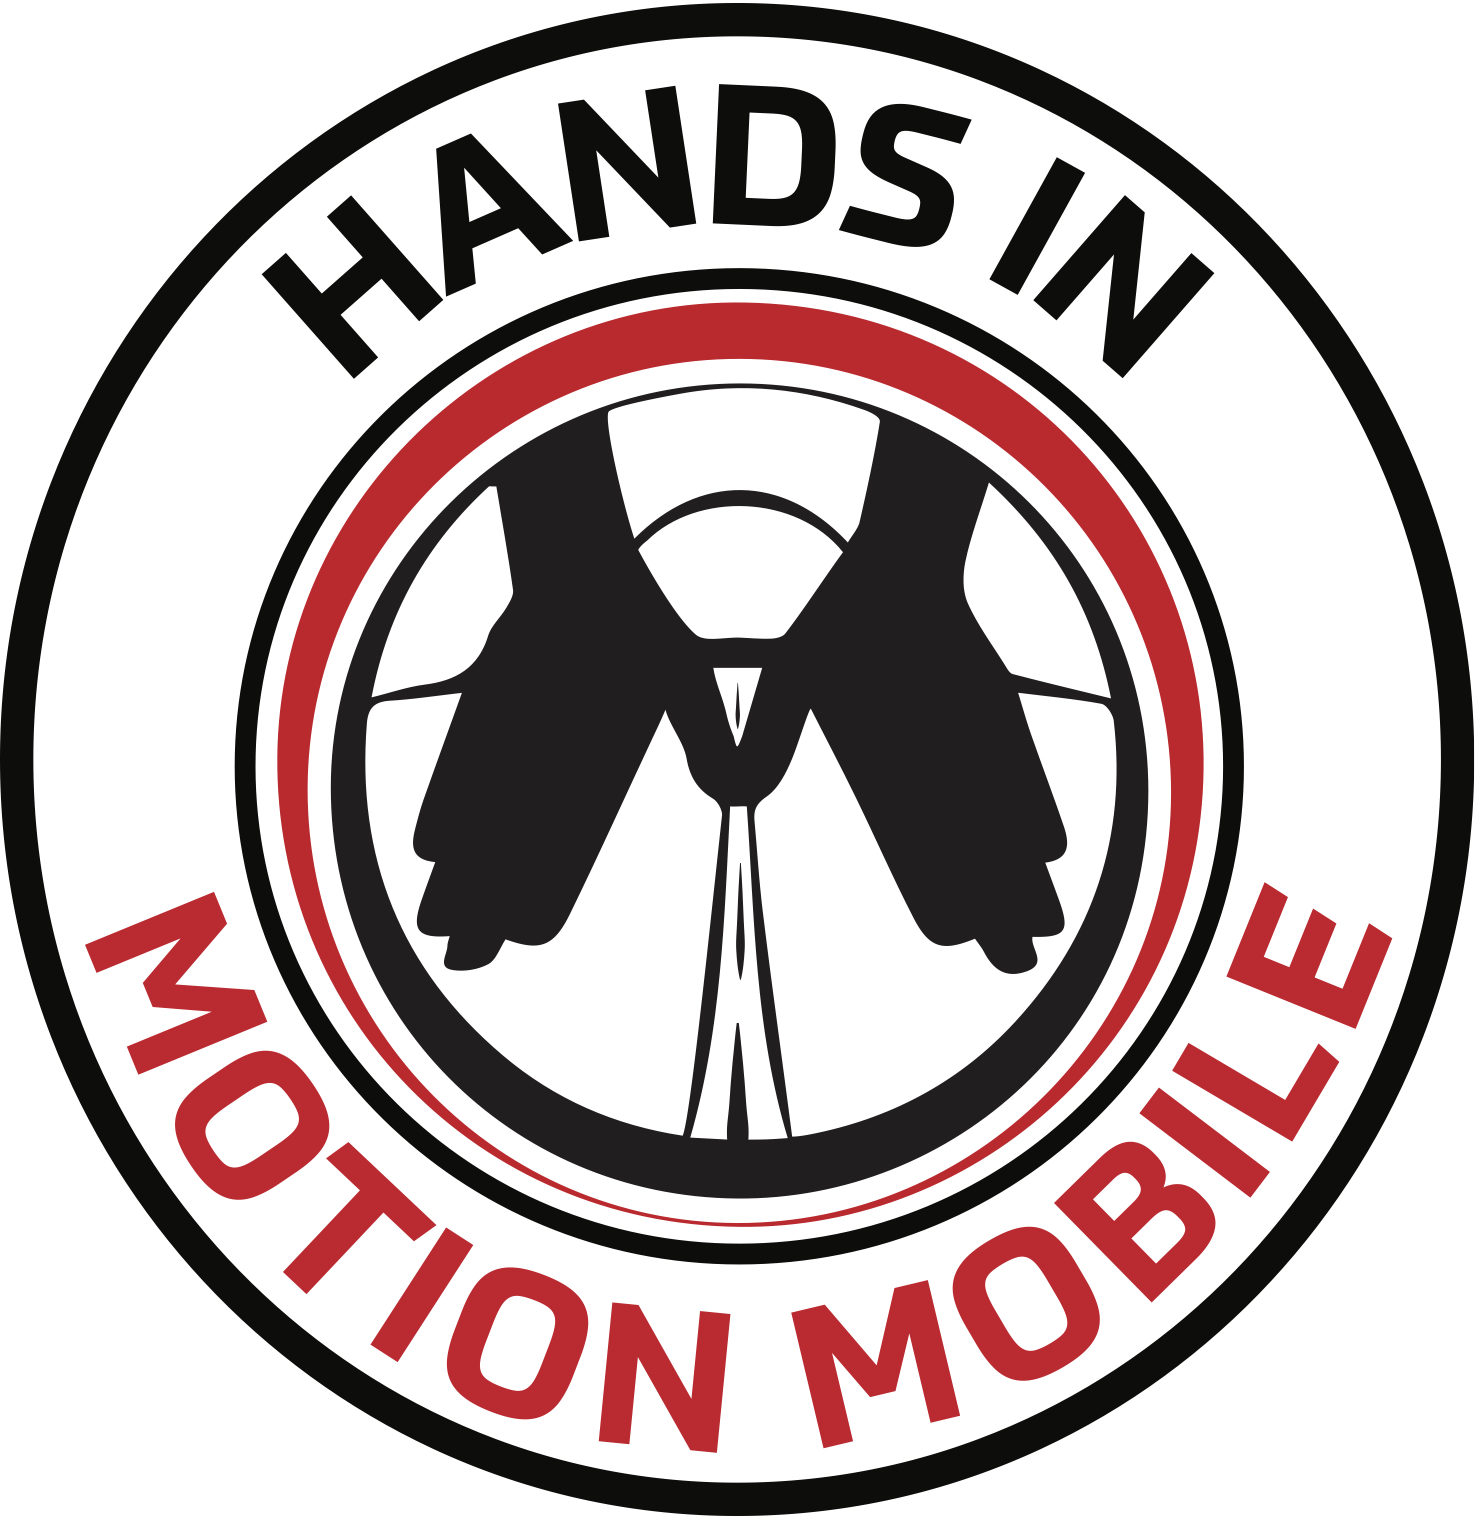 Designed for  Hands In Motion Mobile  by  S. Robinson